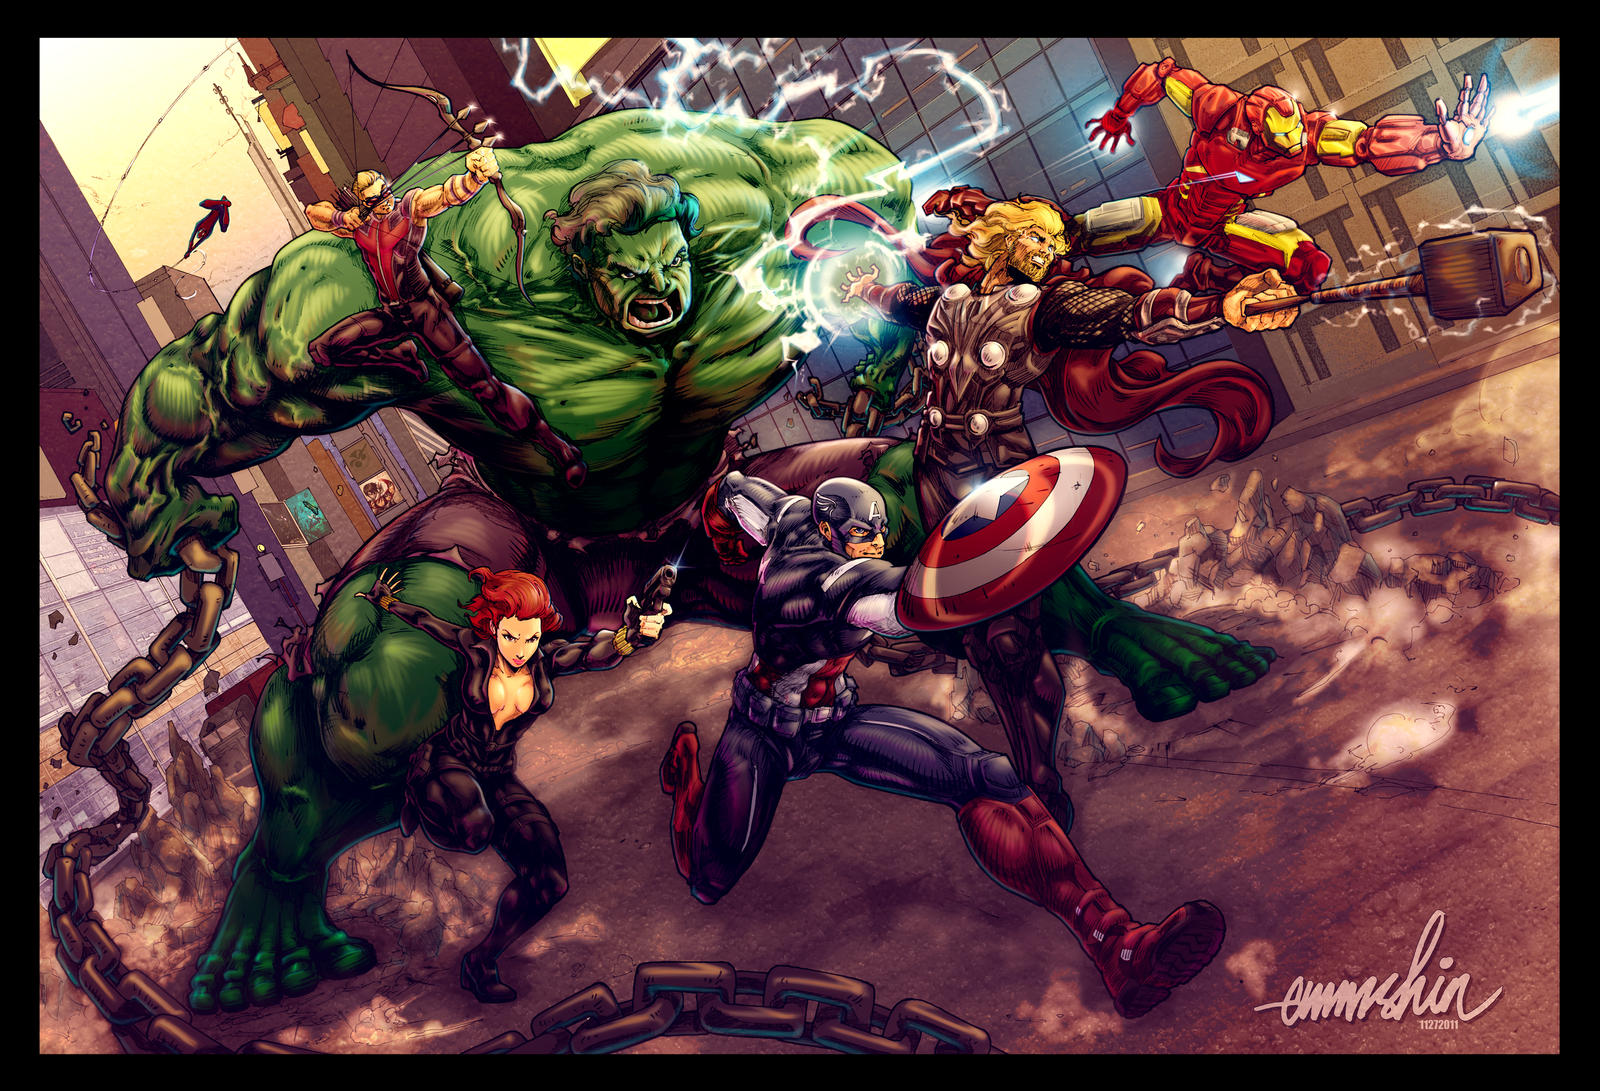 The Avengers by emmshin